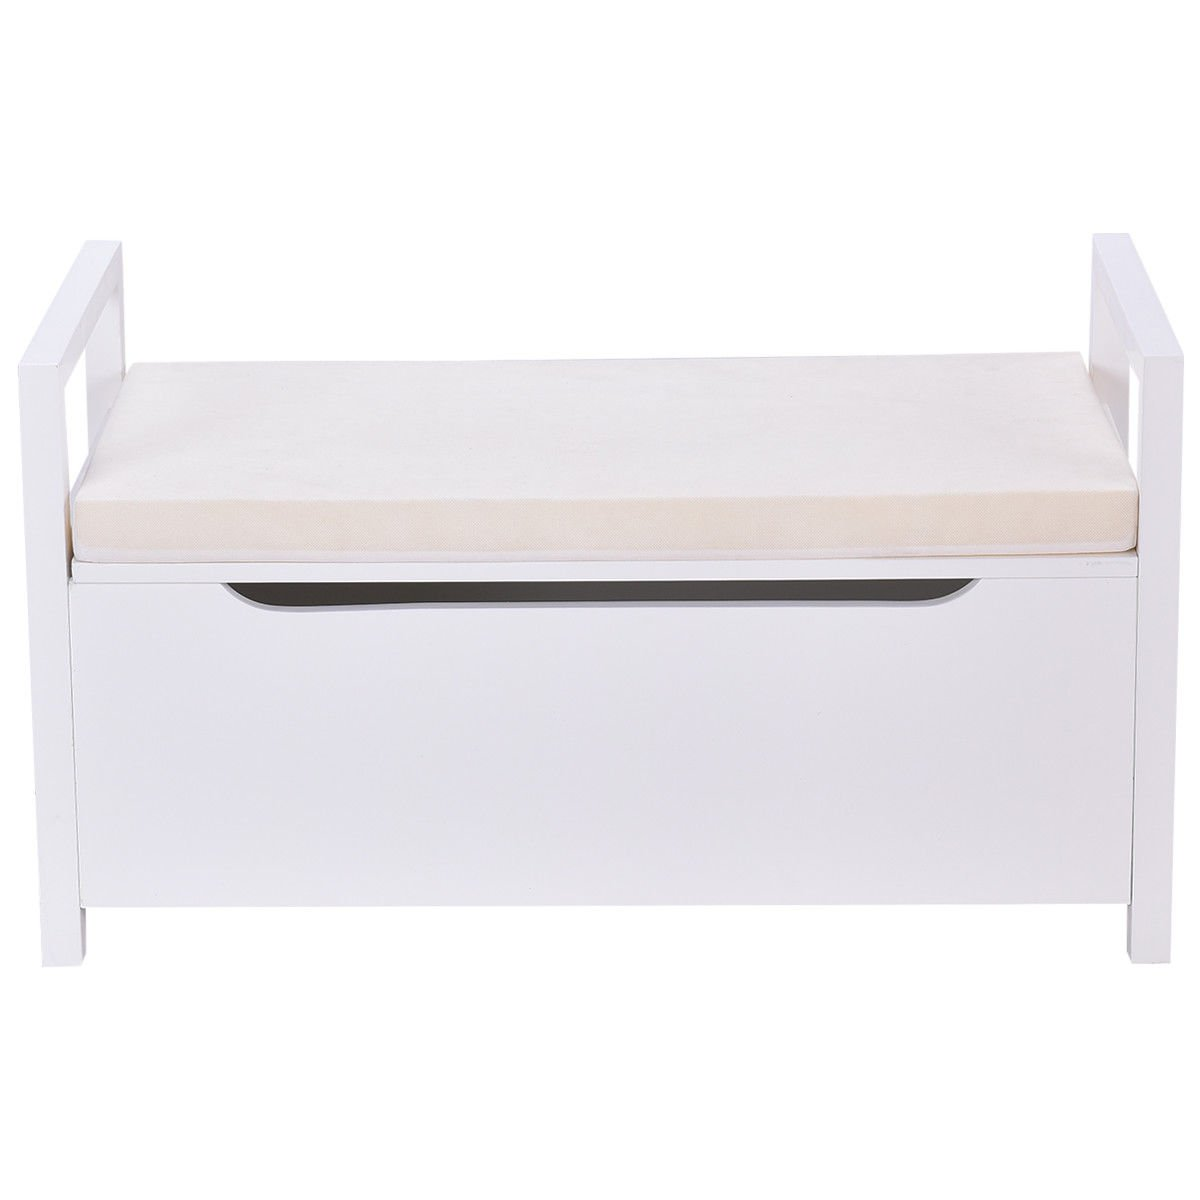 Shoe Bench Storage Rack Cushion Seat Ottoman Bedroom Hallway Entryway White by Happybeamy